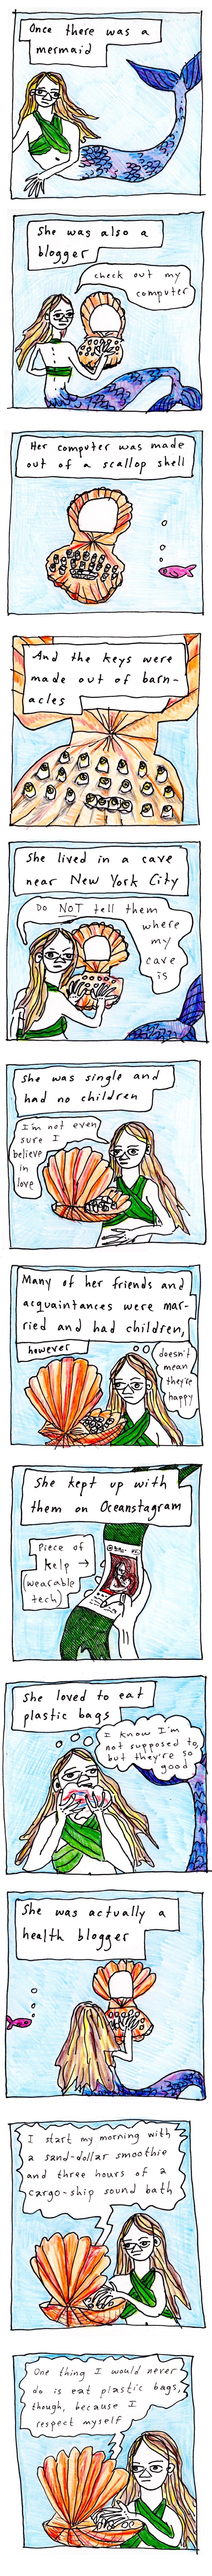 """A 12 panel comic by Edith Zimmerman named """"Aquatic Interlude #1""""  Image 1: A drawing of a mermaid with blonde hair and a blue and purple tail. Narration text: """"Once there was a mermaid""""  Image 2: A blonde-haired mermaid with a purple and blue tail sits at a scallop shell computer.  Narration text: """"She was also a blogger"""" Speech text: """"Check out my computer""""  Image 3: A small pink fish swims near the scallop shell computer.  Narration text: """"Her computer was made out of a scallop shell""""  Image 4: Closeup of the scallop computer.  Narration text: """"And the keys were made of barnacles""""  Image 5: The blonde mermaid with a blue and purple tail turns to glare at the viewer while typing on her scallop shell computer.  Narration text: """"She lived in a cave near New York City"""" Speech text: """"Do NOT tell them where my cave is""""  Image 6: A blonde mermaid at a scallop shell computer.  Narration text: """"She was single and had no children"""" Speech text: """"I'm not even sure I believe in love""""  Image 7: A blonde mermaid at a scallop shell computer.  Narration text: """"Many of her friends and acquaintances were married and had children""""  Thought bubble text: """"doesn't mean they're happy""""  Image 8: A hand holding a kelp smart watch showing a social media page on its screen.  Narration text: """"She kept up with them on Oceanstagram"""" Describer text with arrow pointing to smart watch: """"piece of kelp (wearable tech)""""  Image 9: A blonde mermaid showing a plastic bag into her face.  Narration text: """"She loved to eat plastic bags"""" Thought bubble text: """"I know I'm not supposed to, but they're so good""""  Image 10: a small pink fish swims near the blod mermaid at her scallop shell computer.  Narration text: """"She was actually a health blogger""""  Image 11: A blonde mermaid seated at her scallop shell computer, blogging.  Blog text: """"I start my morning with a sand-dollar smoothie and three hours of a cargo-ship sound bath""""  Image 12: A blonde mermaid seated at her scallop shell computer, blogging.  Blog text"""